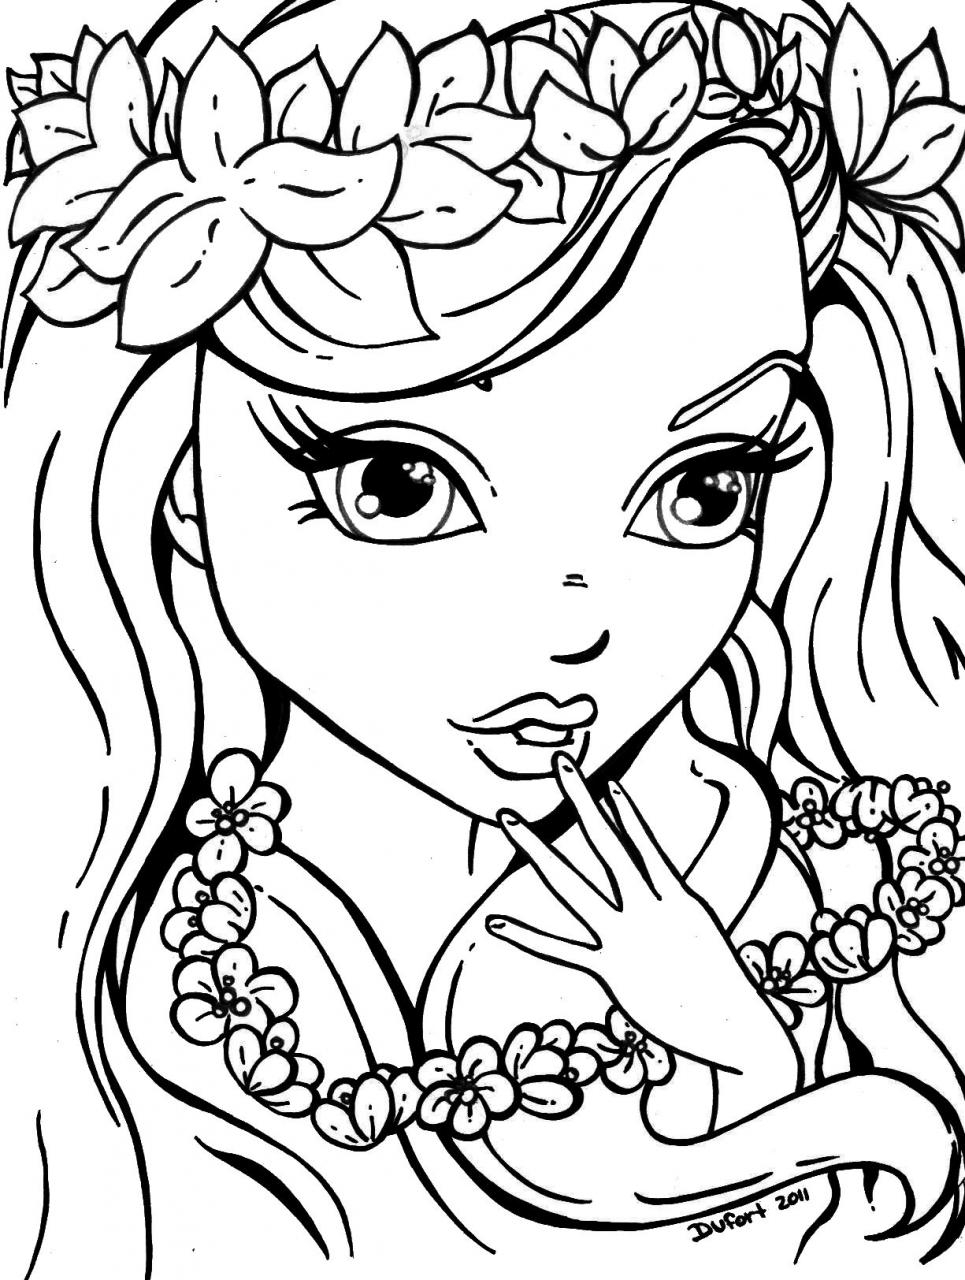 965x1280 Shopkins Hershers Coloring Pages For Girls Download